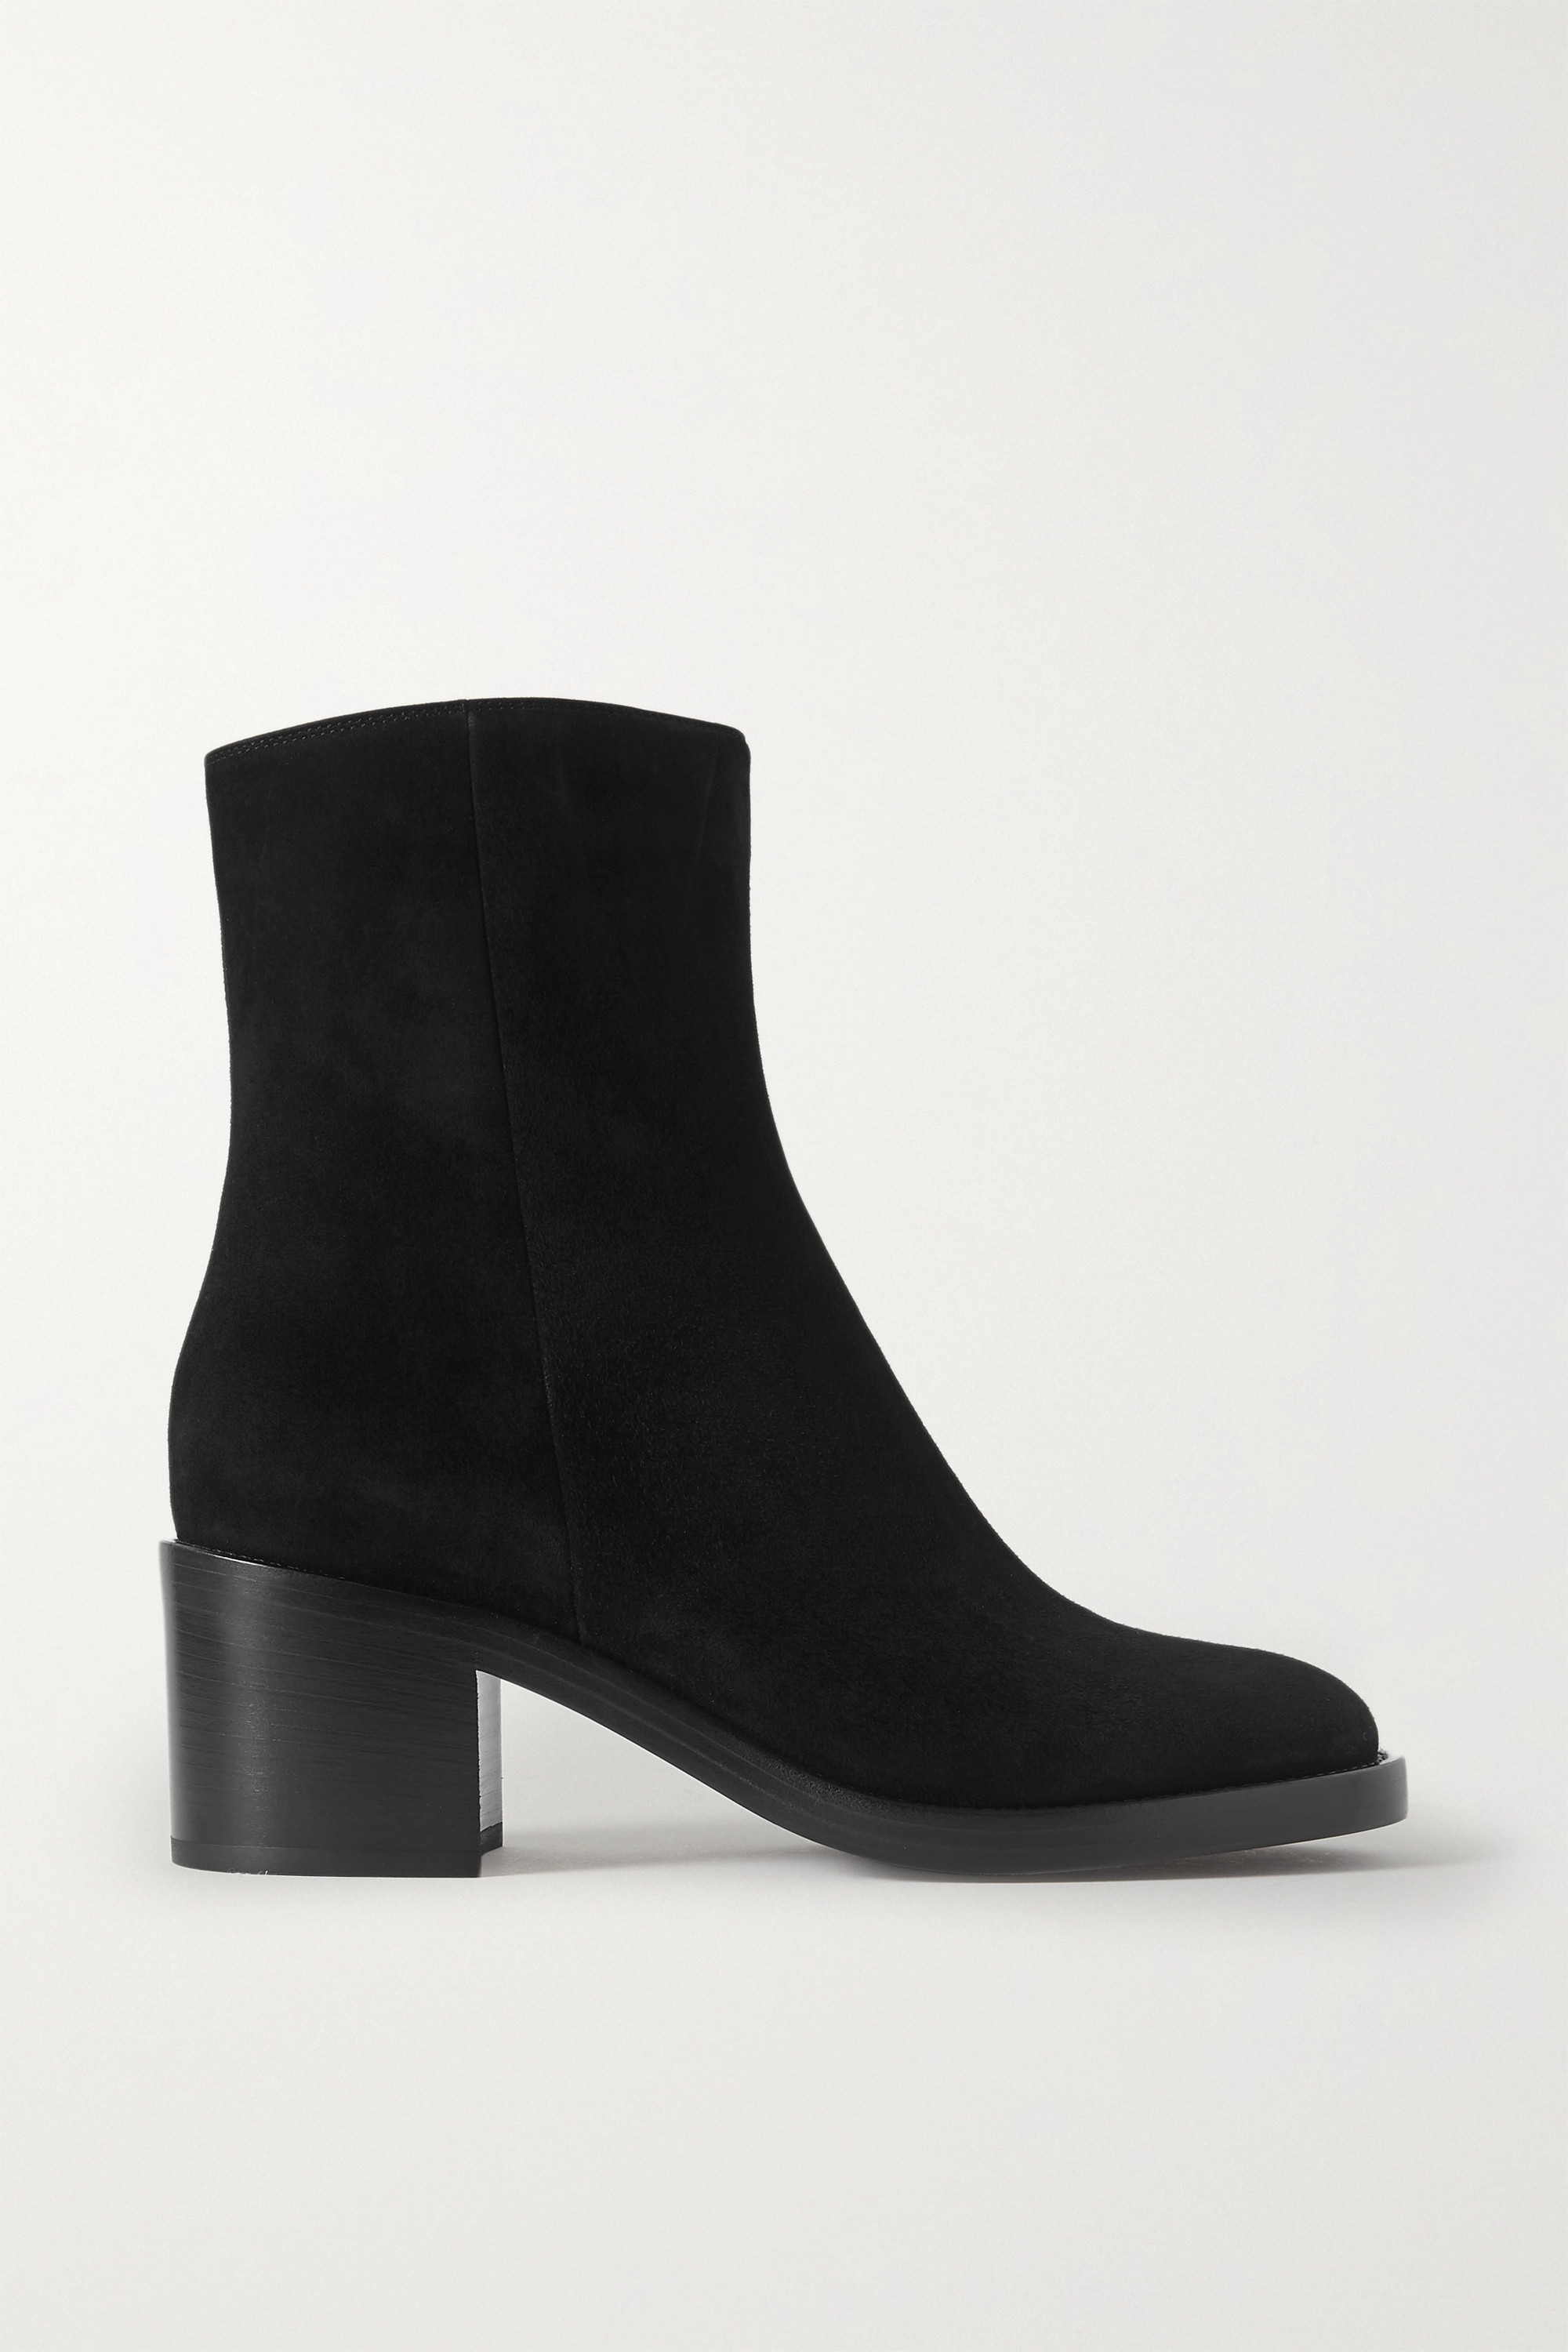 Gianvito Rossi 60 suede ankle boots